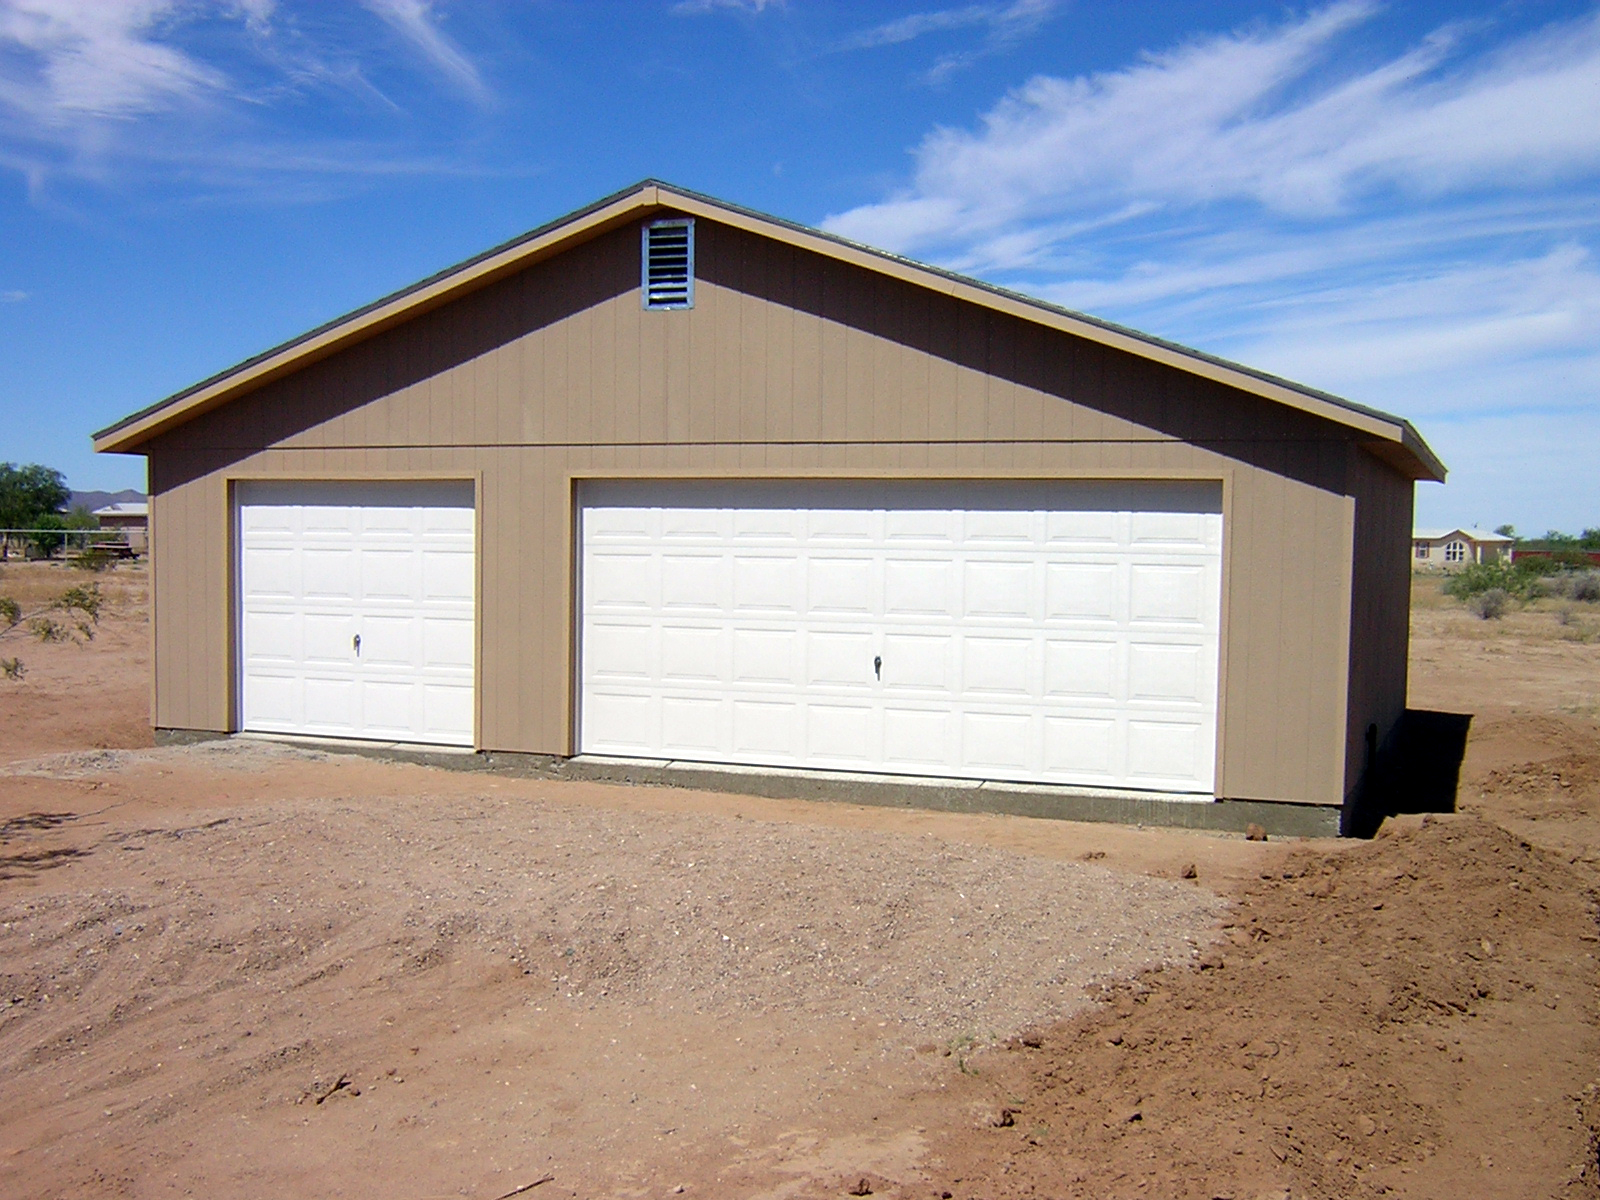 Garage photo galleries - Garage plans cost to build gallery ...